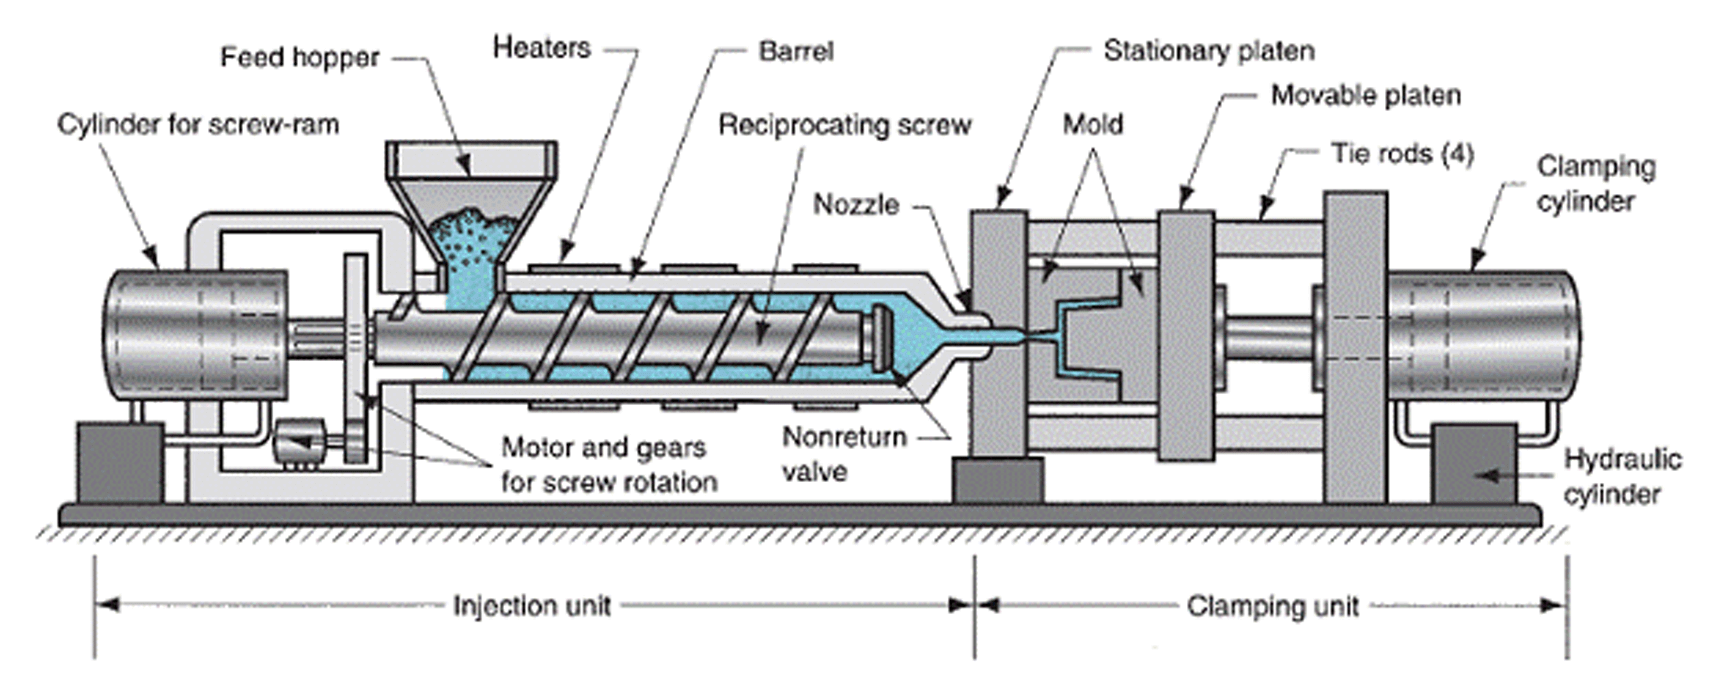 Plastic Molded Parts Manufacturer: Guide about Molding Machines